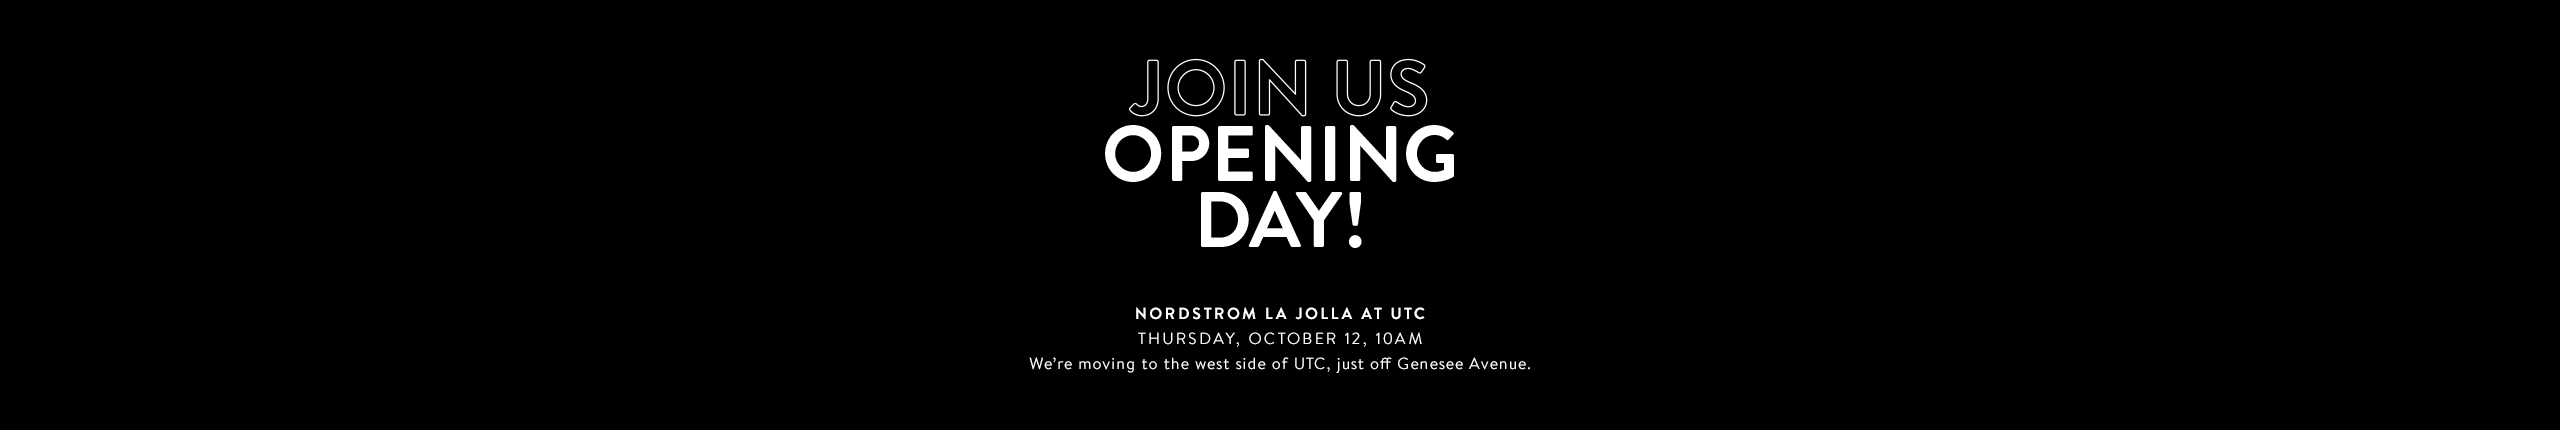 A brand-new Nordstrom La Jolla at UTC. Join us opening day, Thursday, October 12, 2017, at 10am.